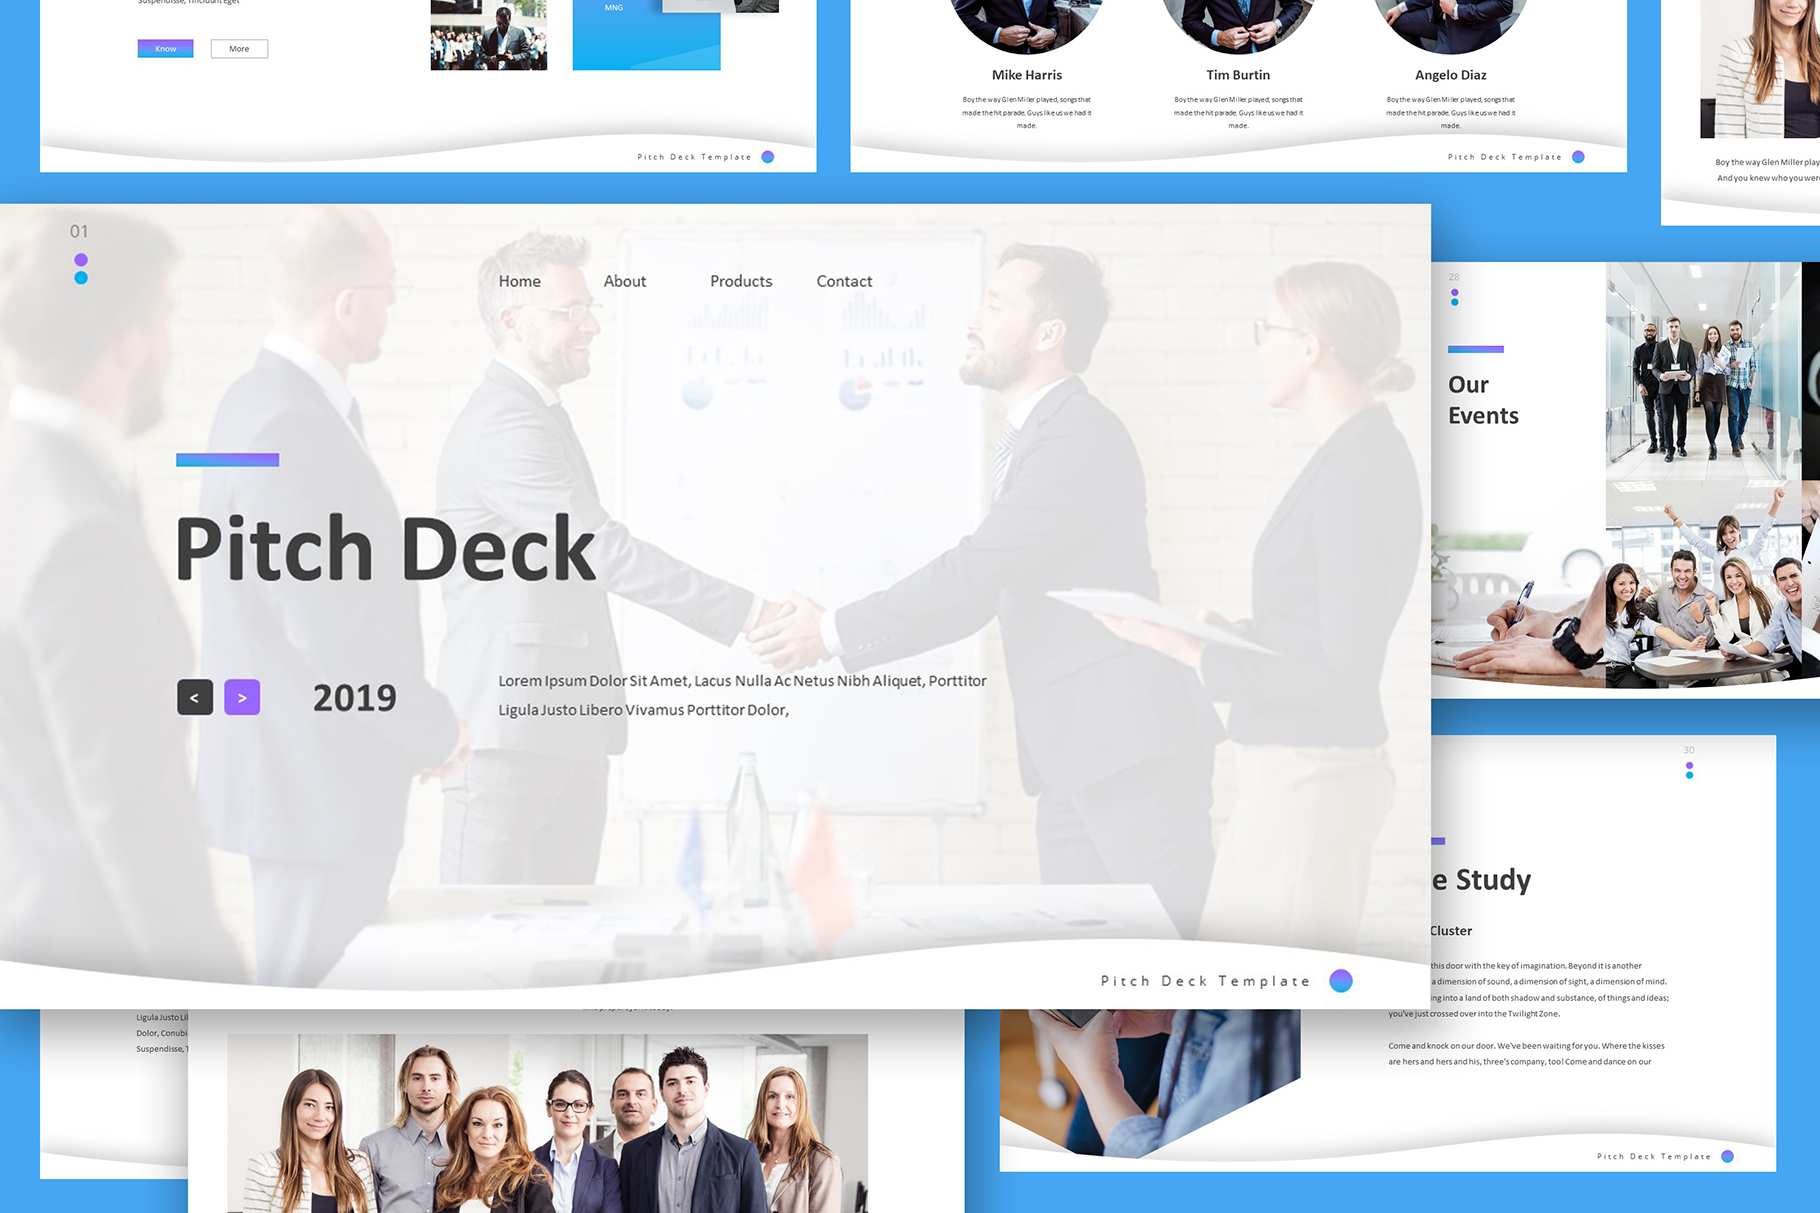 Pitch Deck Google Slides Template example image 1